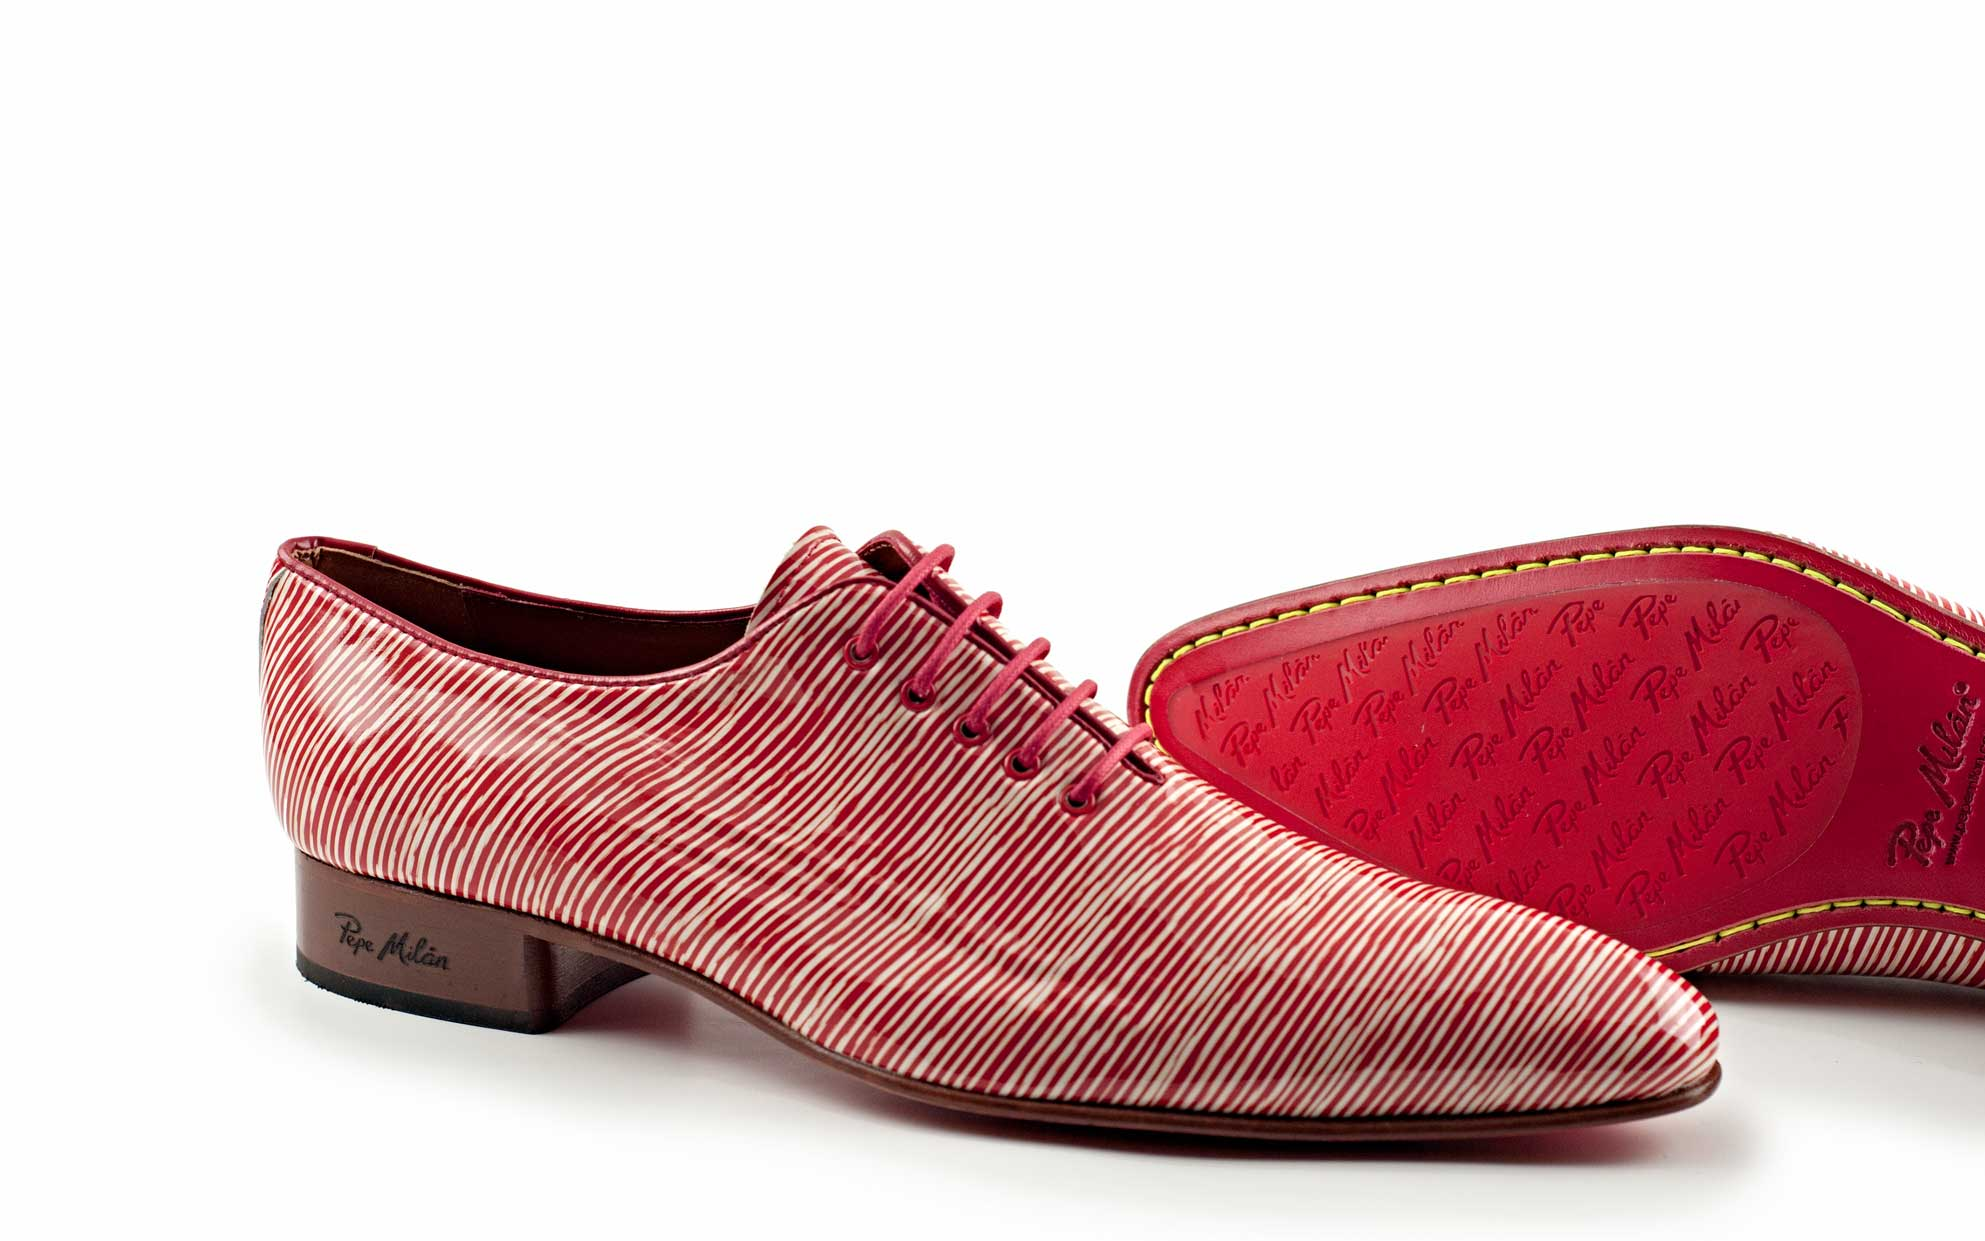 model shoe made of patent leather